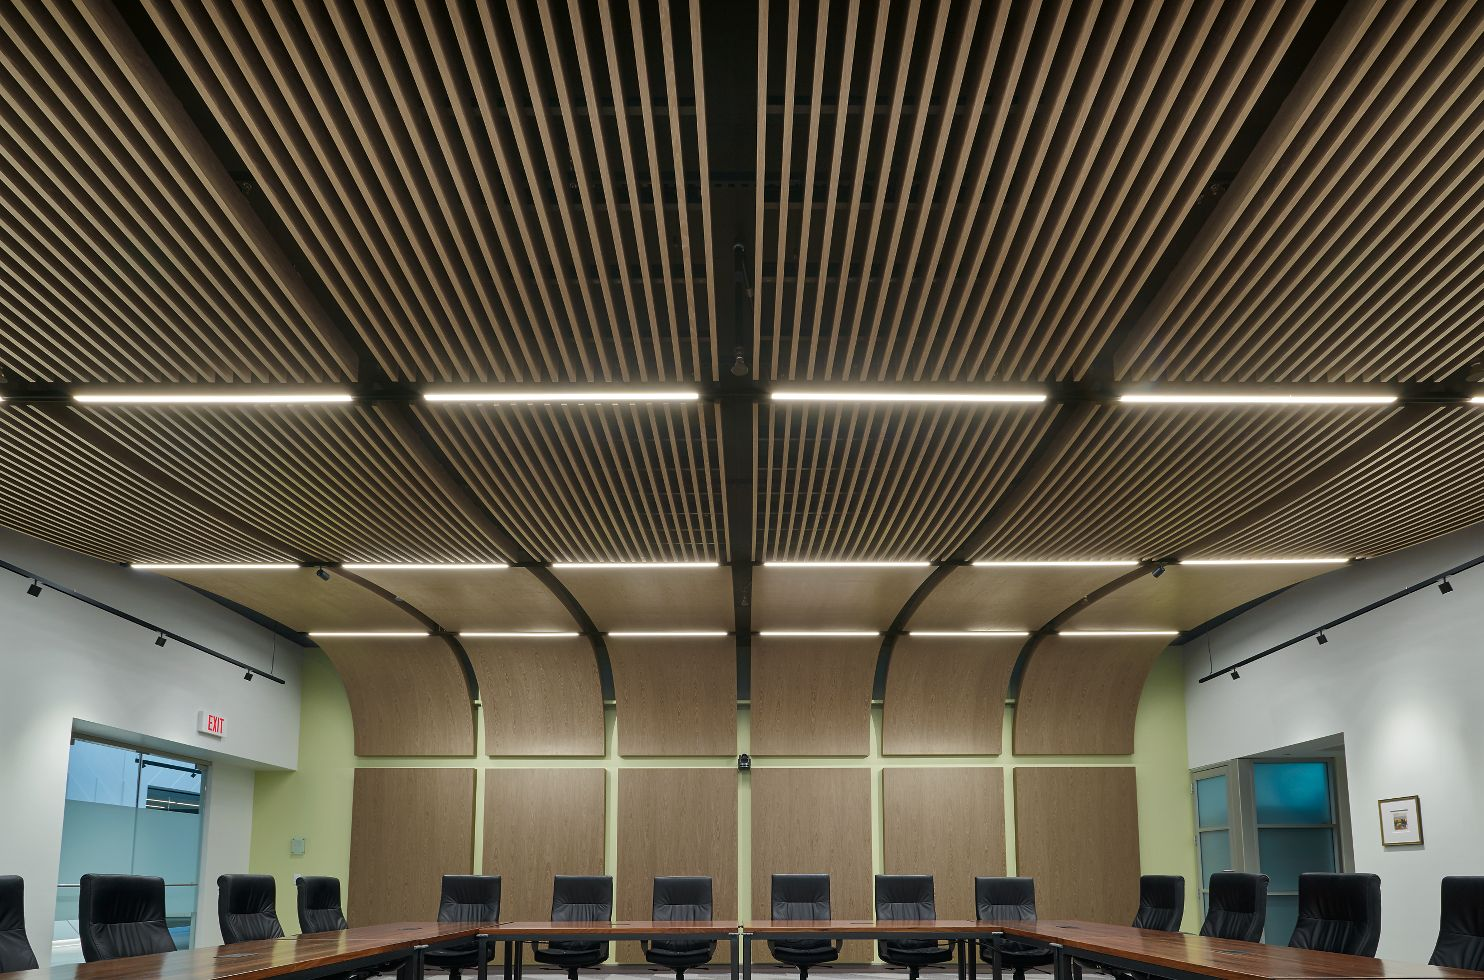 WOODWORKS Custom Grille / WOODWORKS Custom Microperforated Ceiling & Wall Panels / XAL MOVE IT Light Fixtures